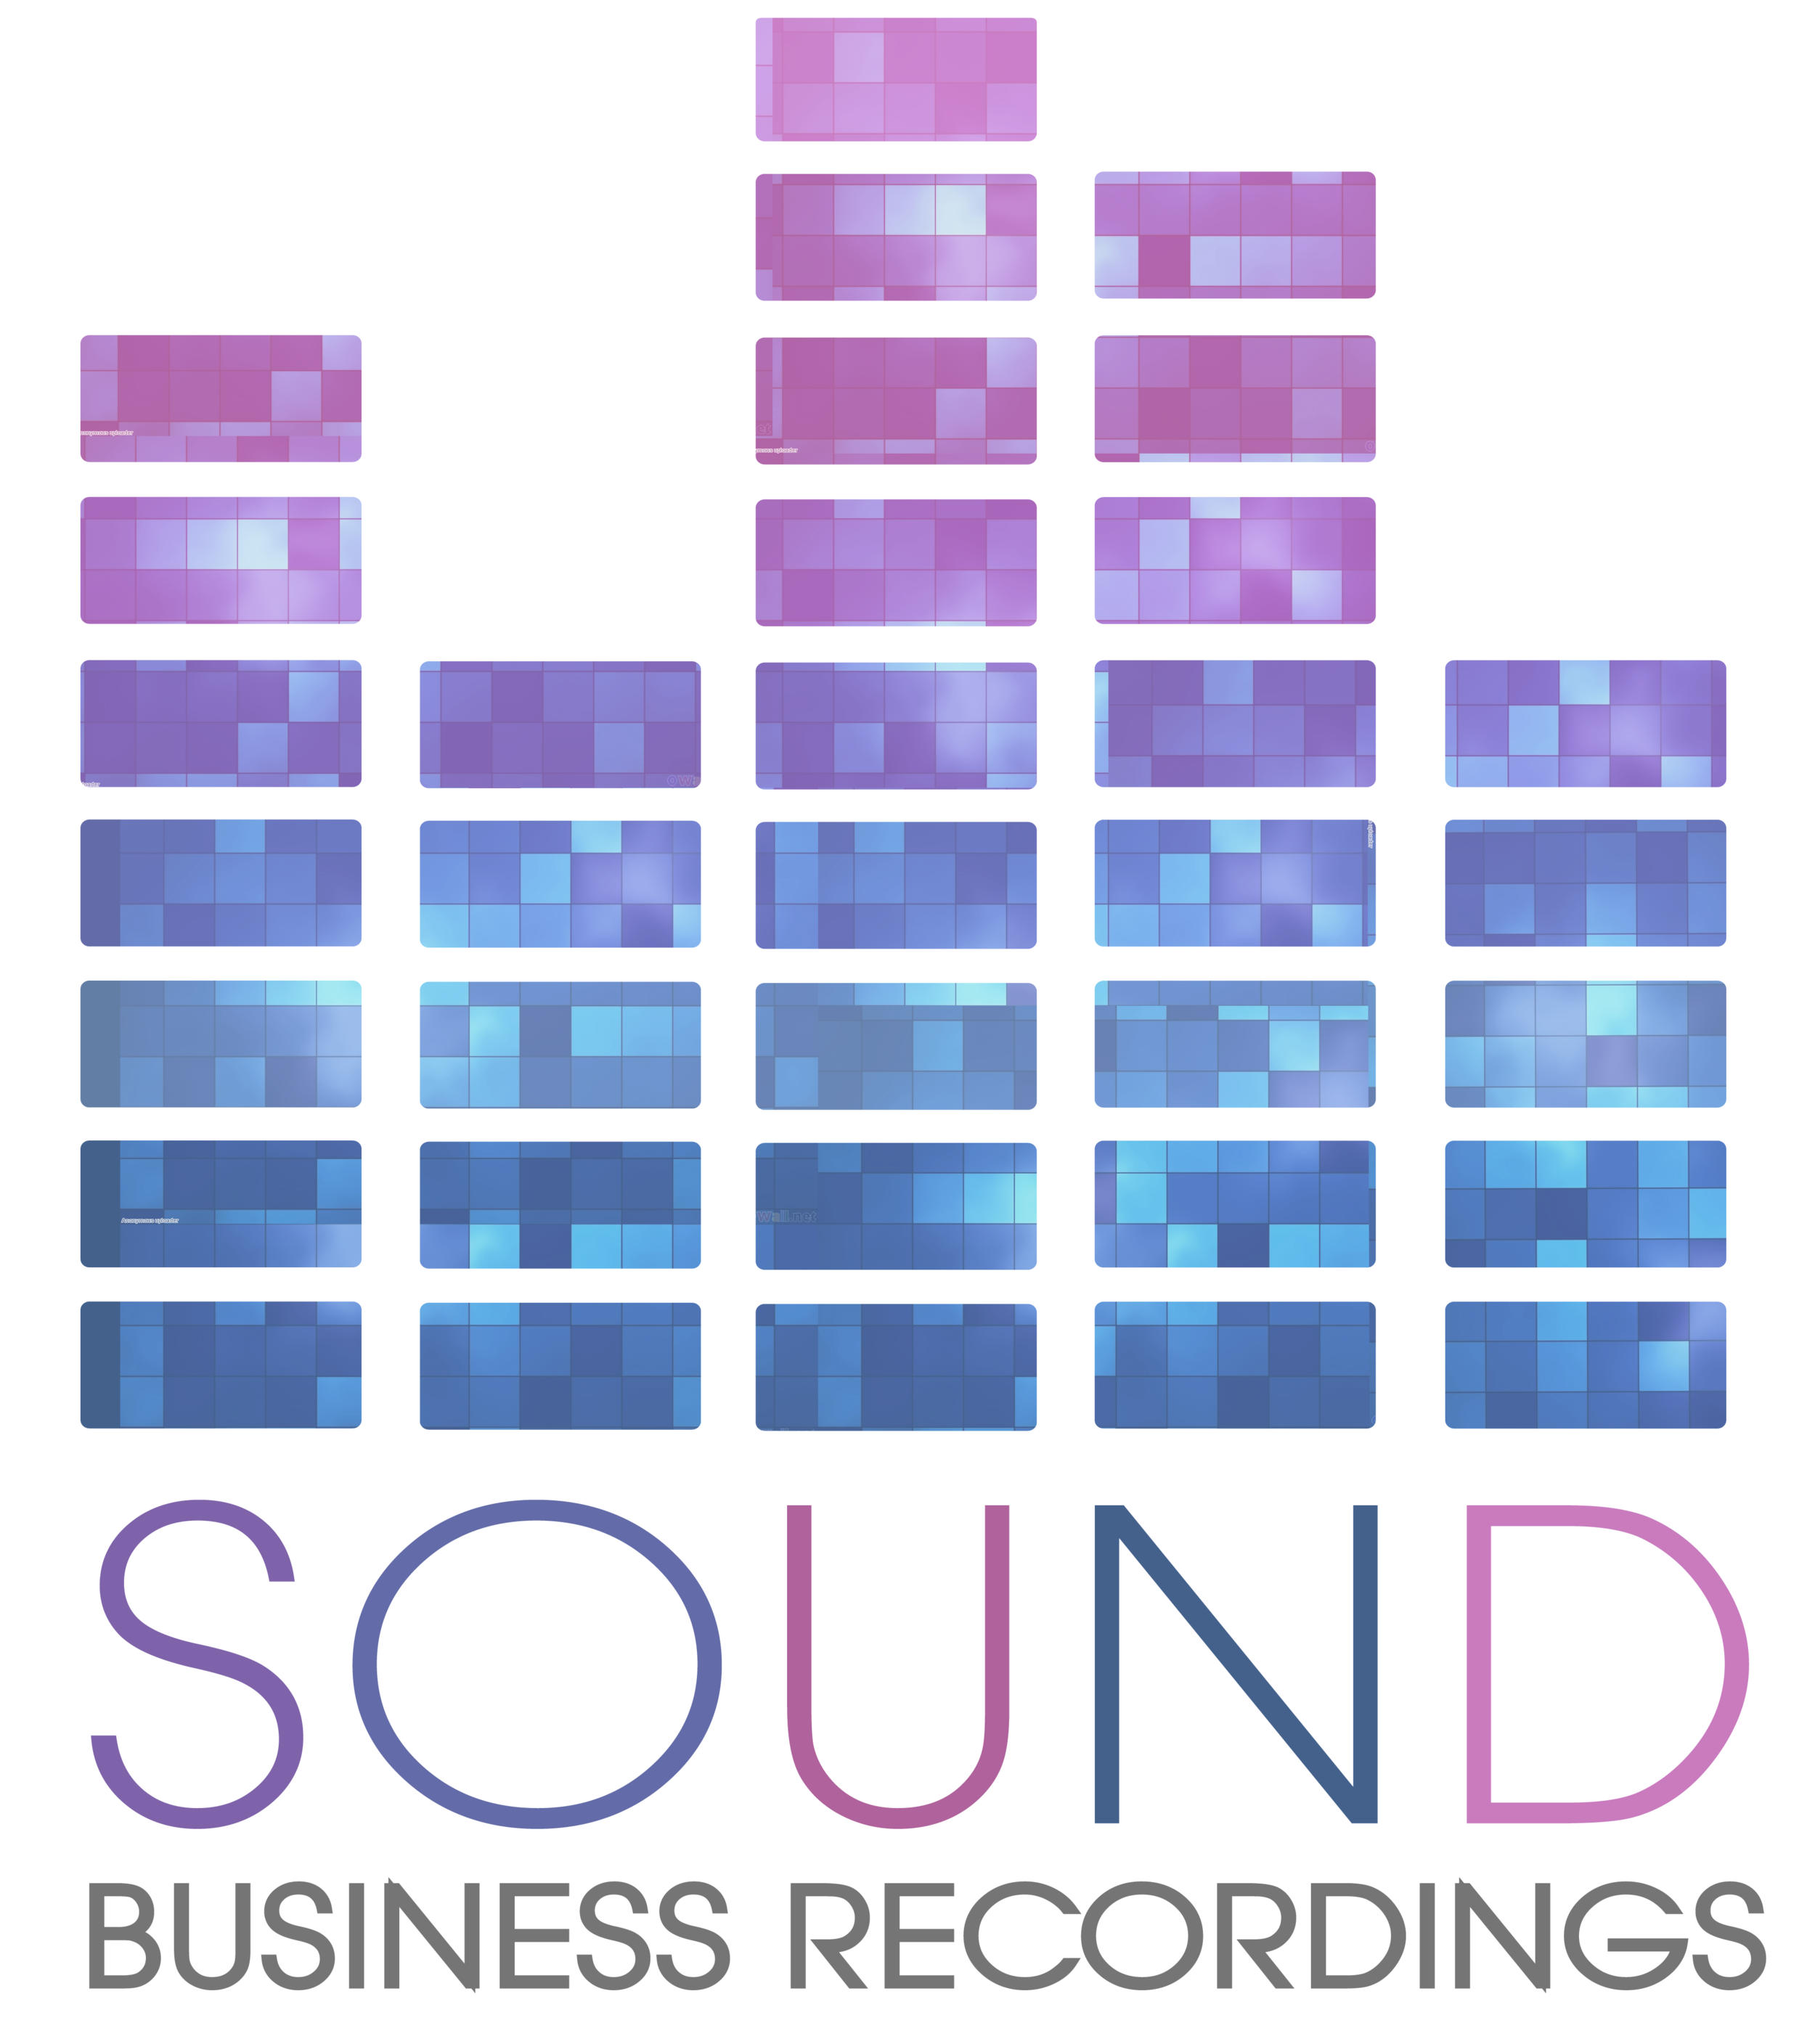 SOUND BUSINESS LOGO Main Large.png